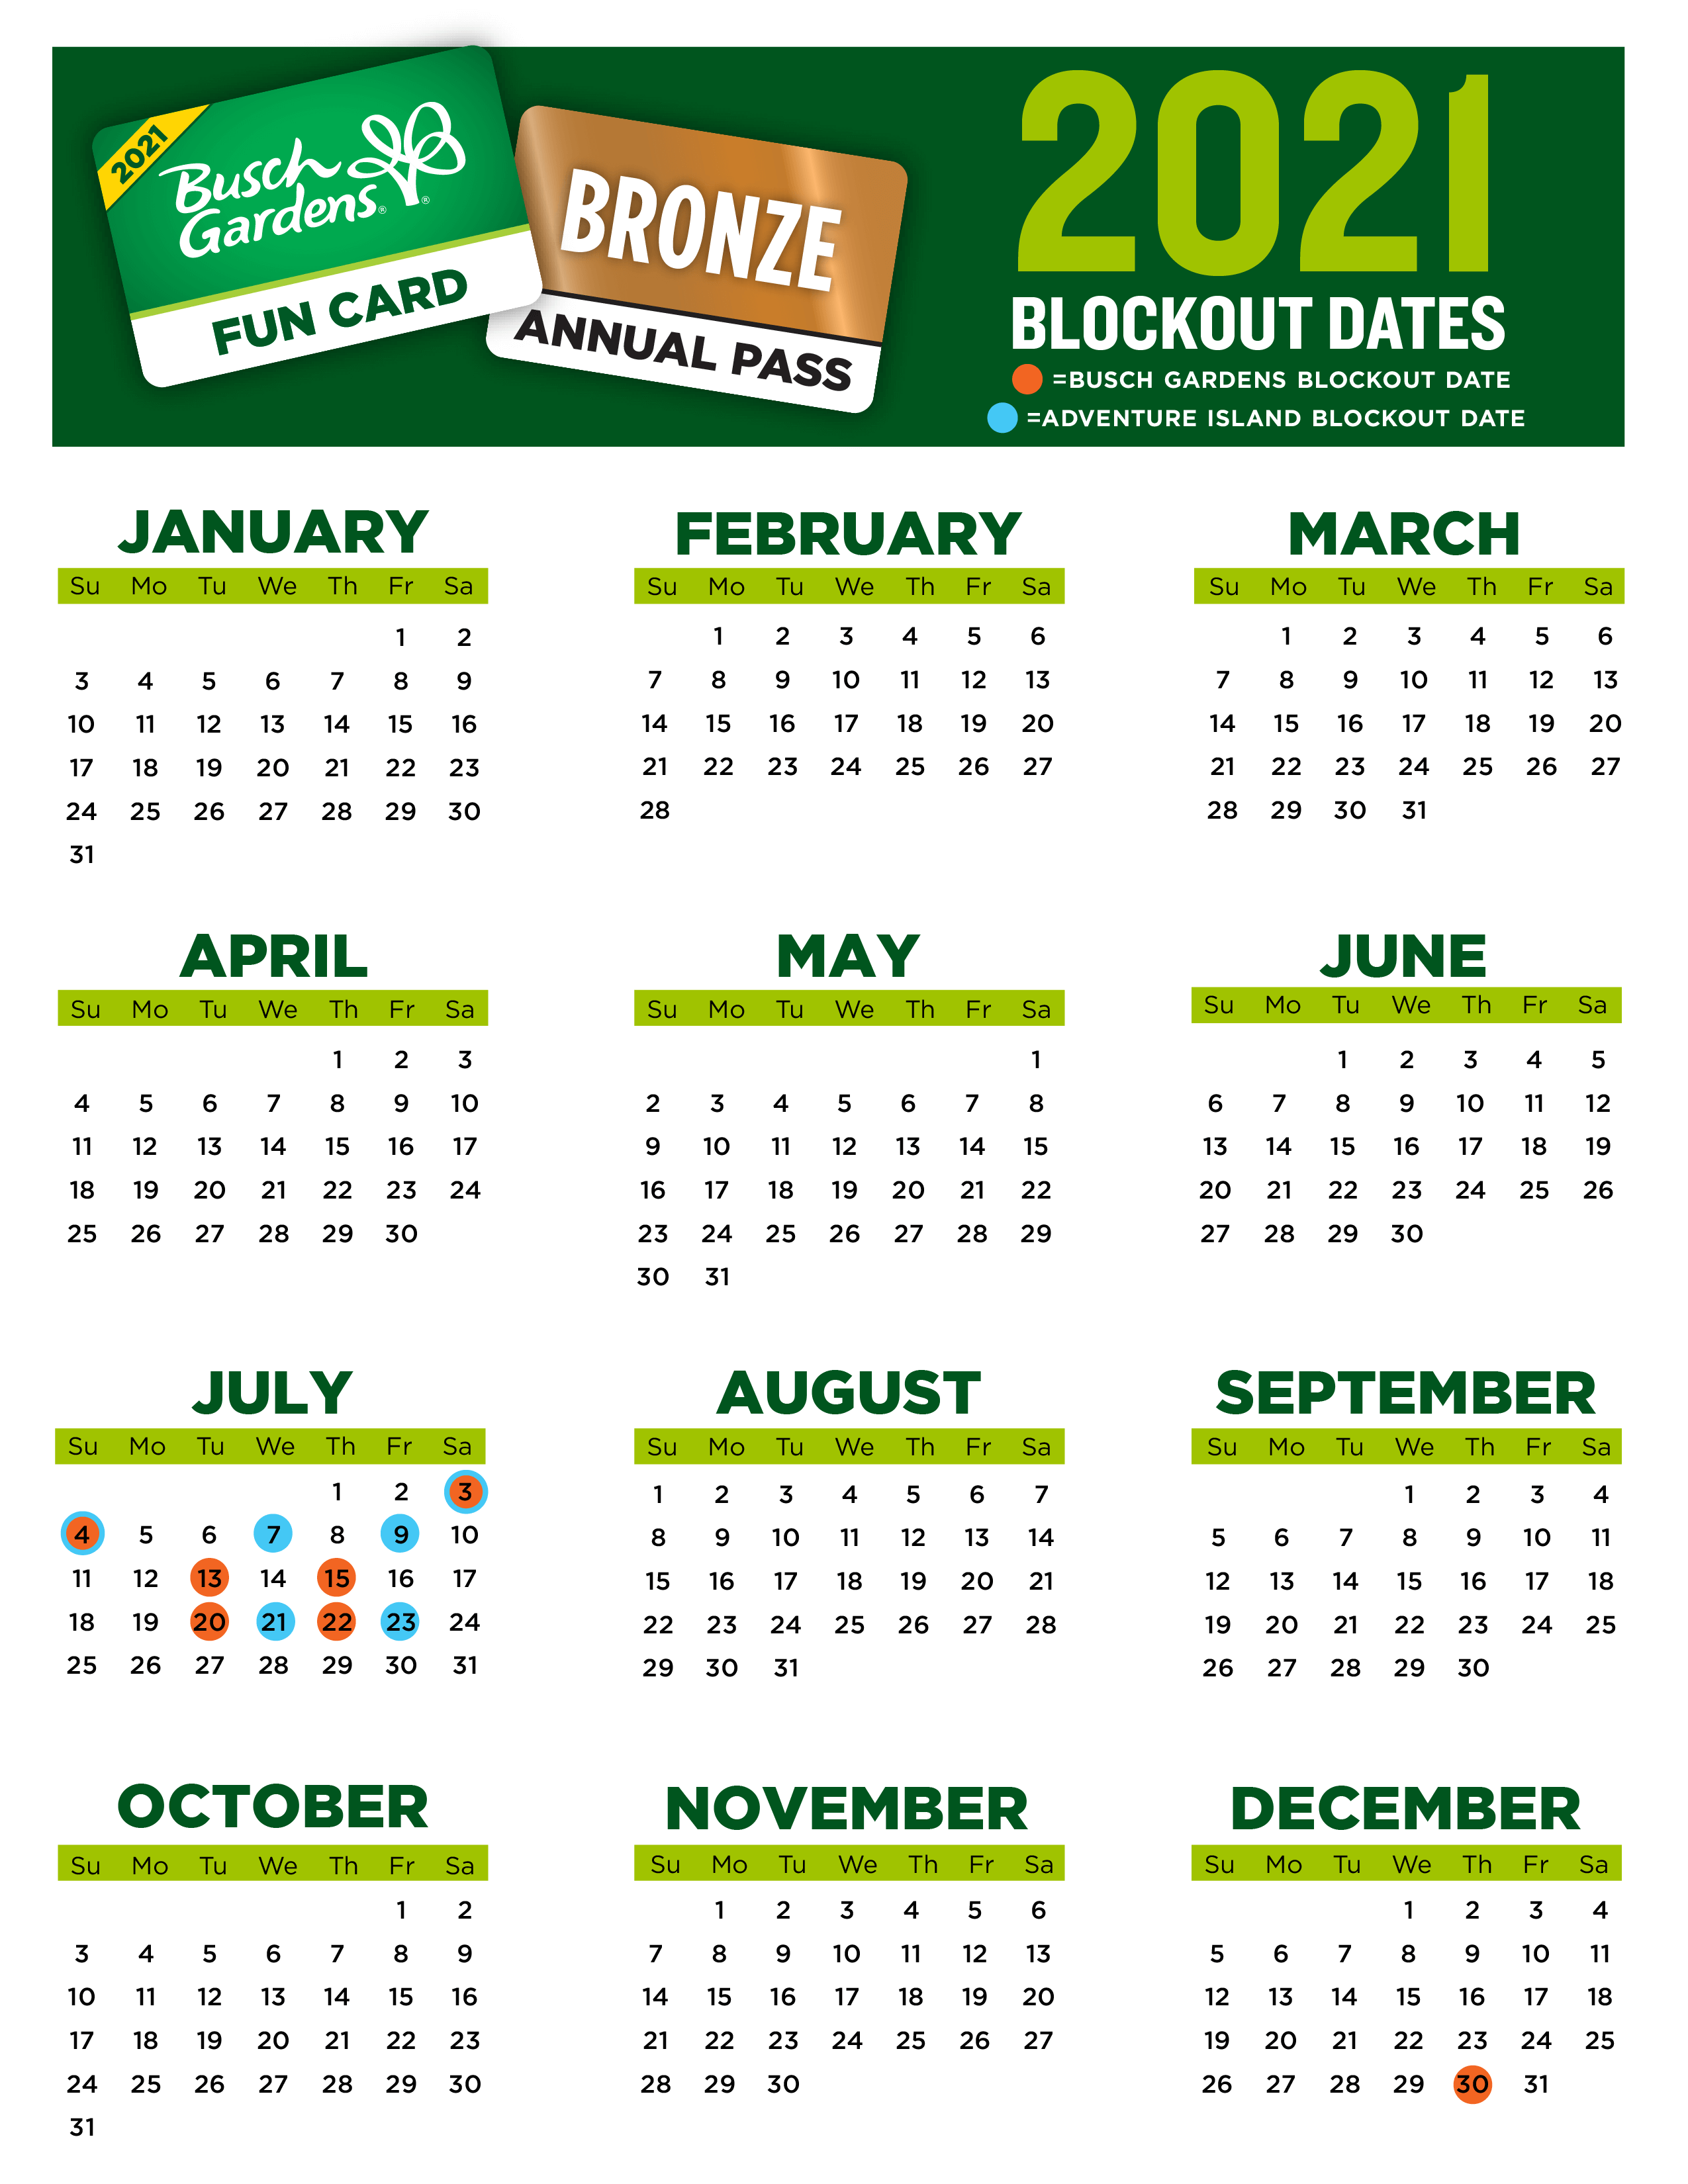 bgt  2021 blockout date calendarbronze  fc - How To Check If Your Busch Gardens Pass Is Expired